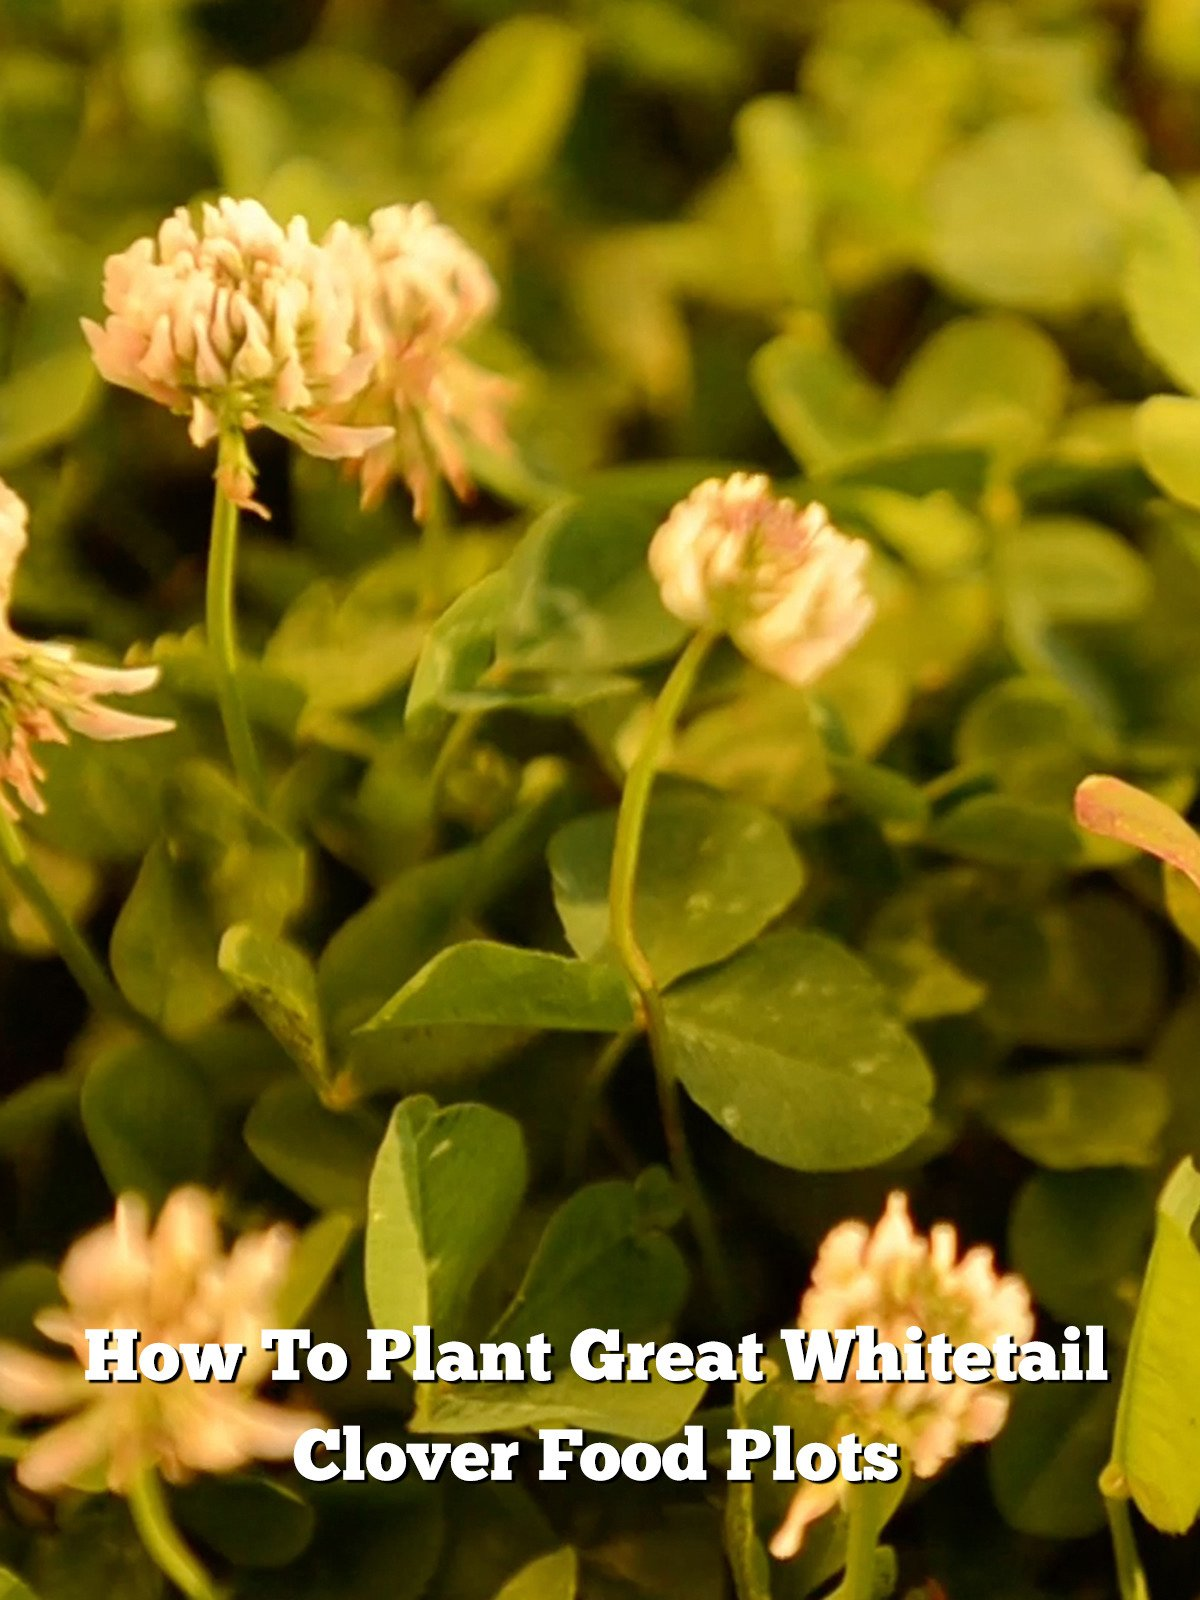 How To Plant Great Whitetail Clover Food Plots